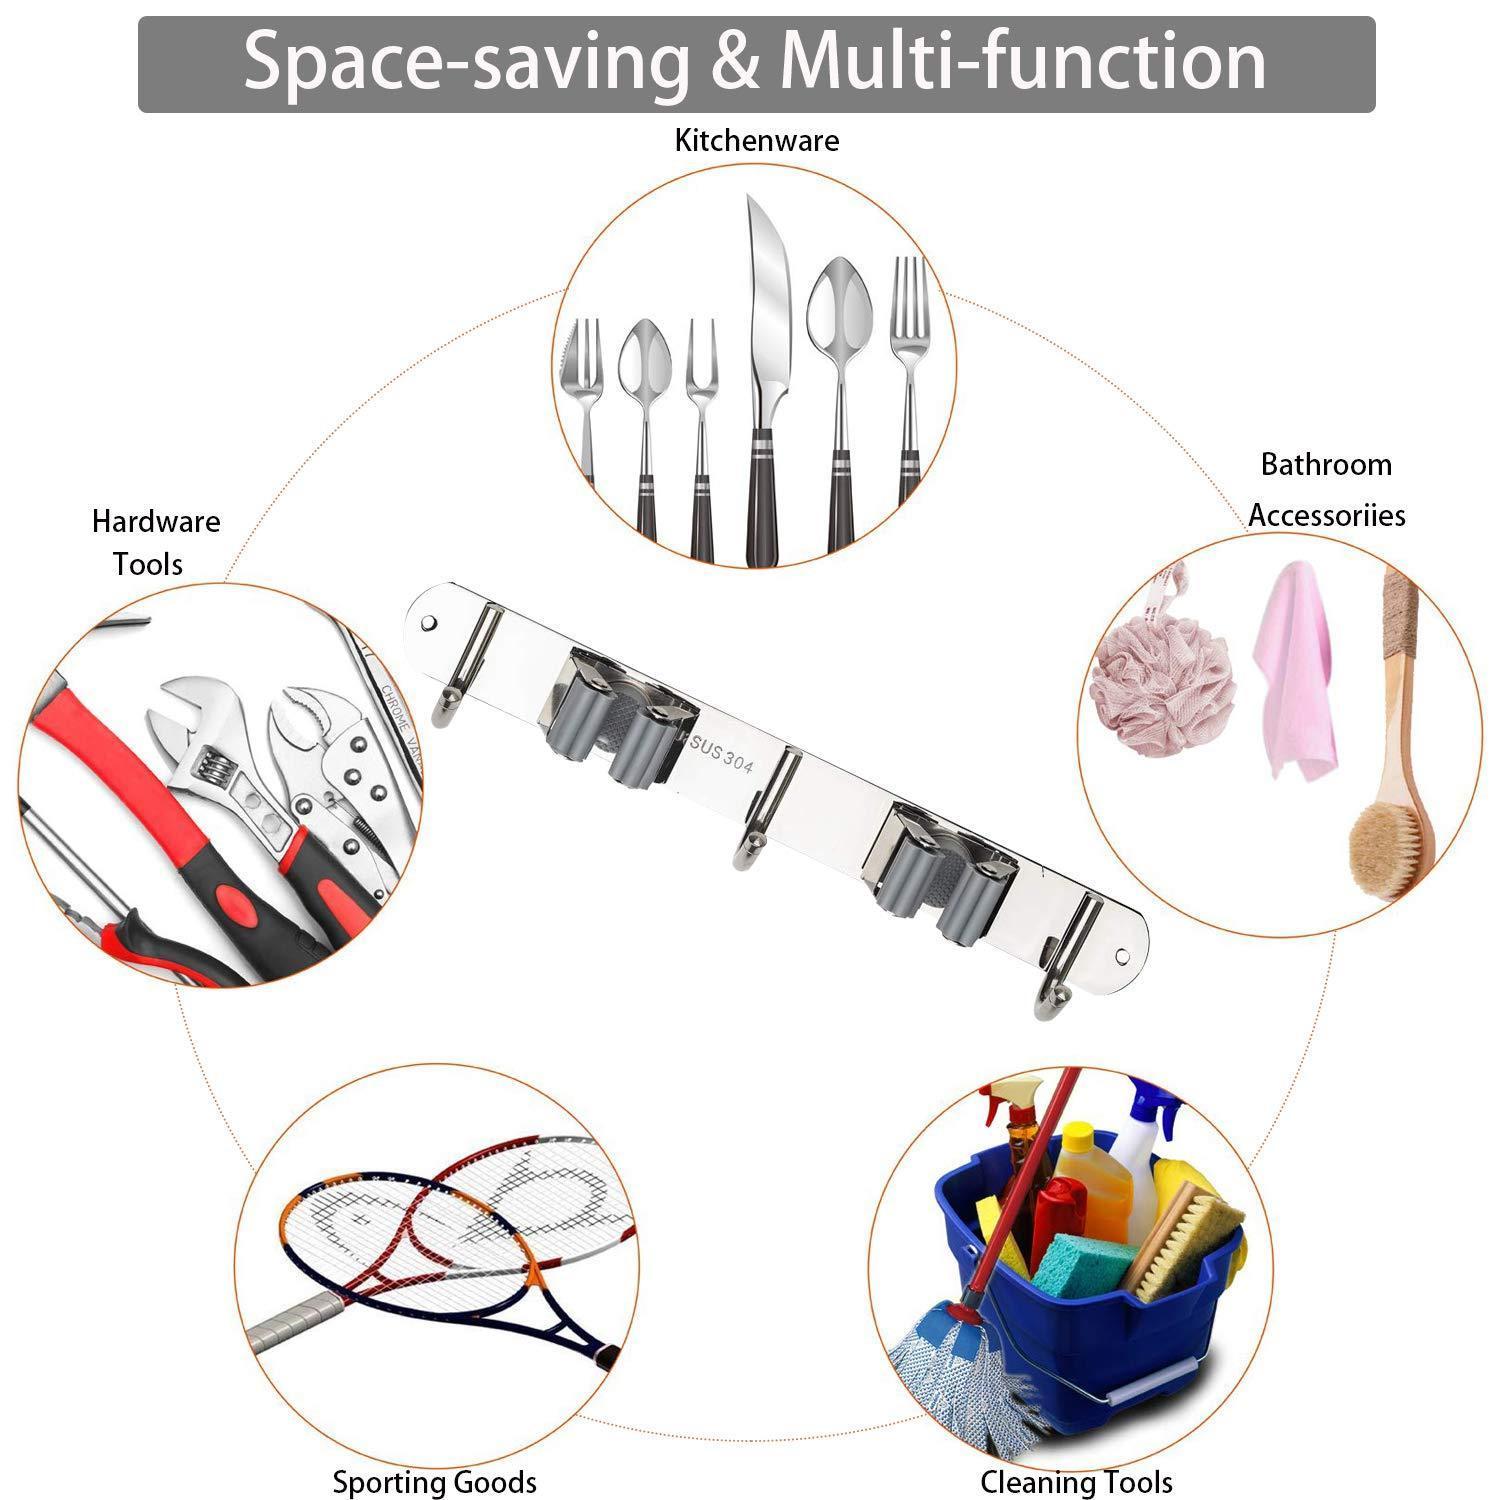 Grey Ahiment Broom Mop Holder Wall Mount,Stainless Steel Garden Tool Organizer with 2 Racks 3 Hooks for Kitchen,Bathroom,Garage and Closet